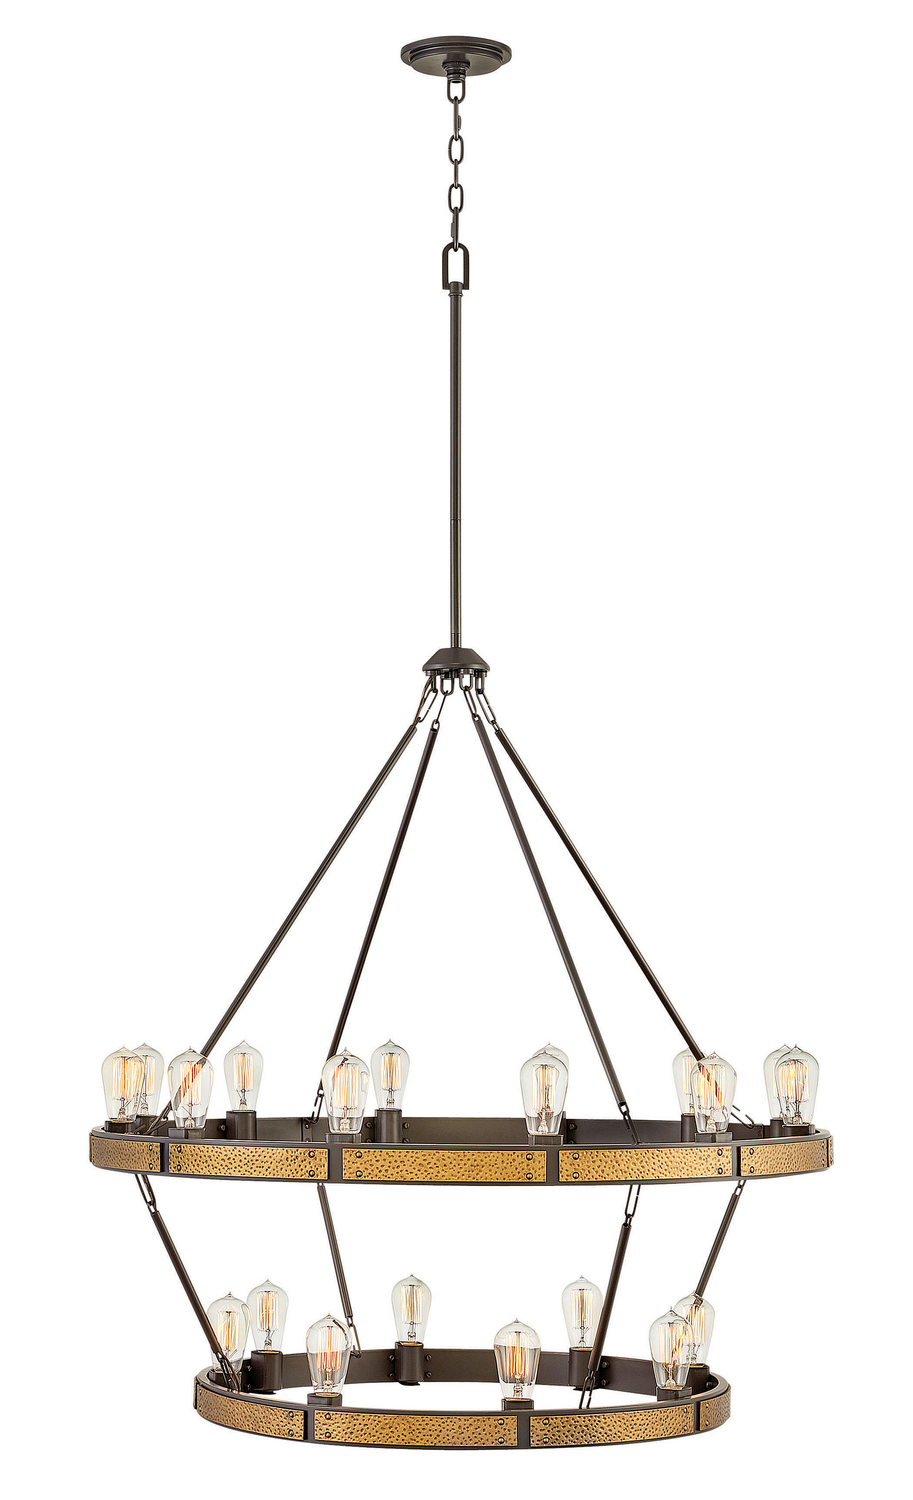 20 Light Chandelier from the Everett collection by Hinkley 4399BZ